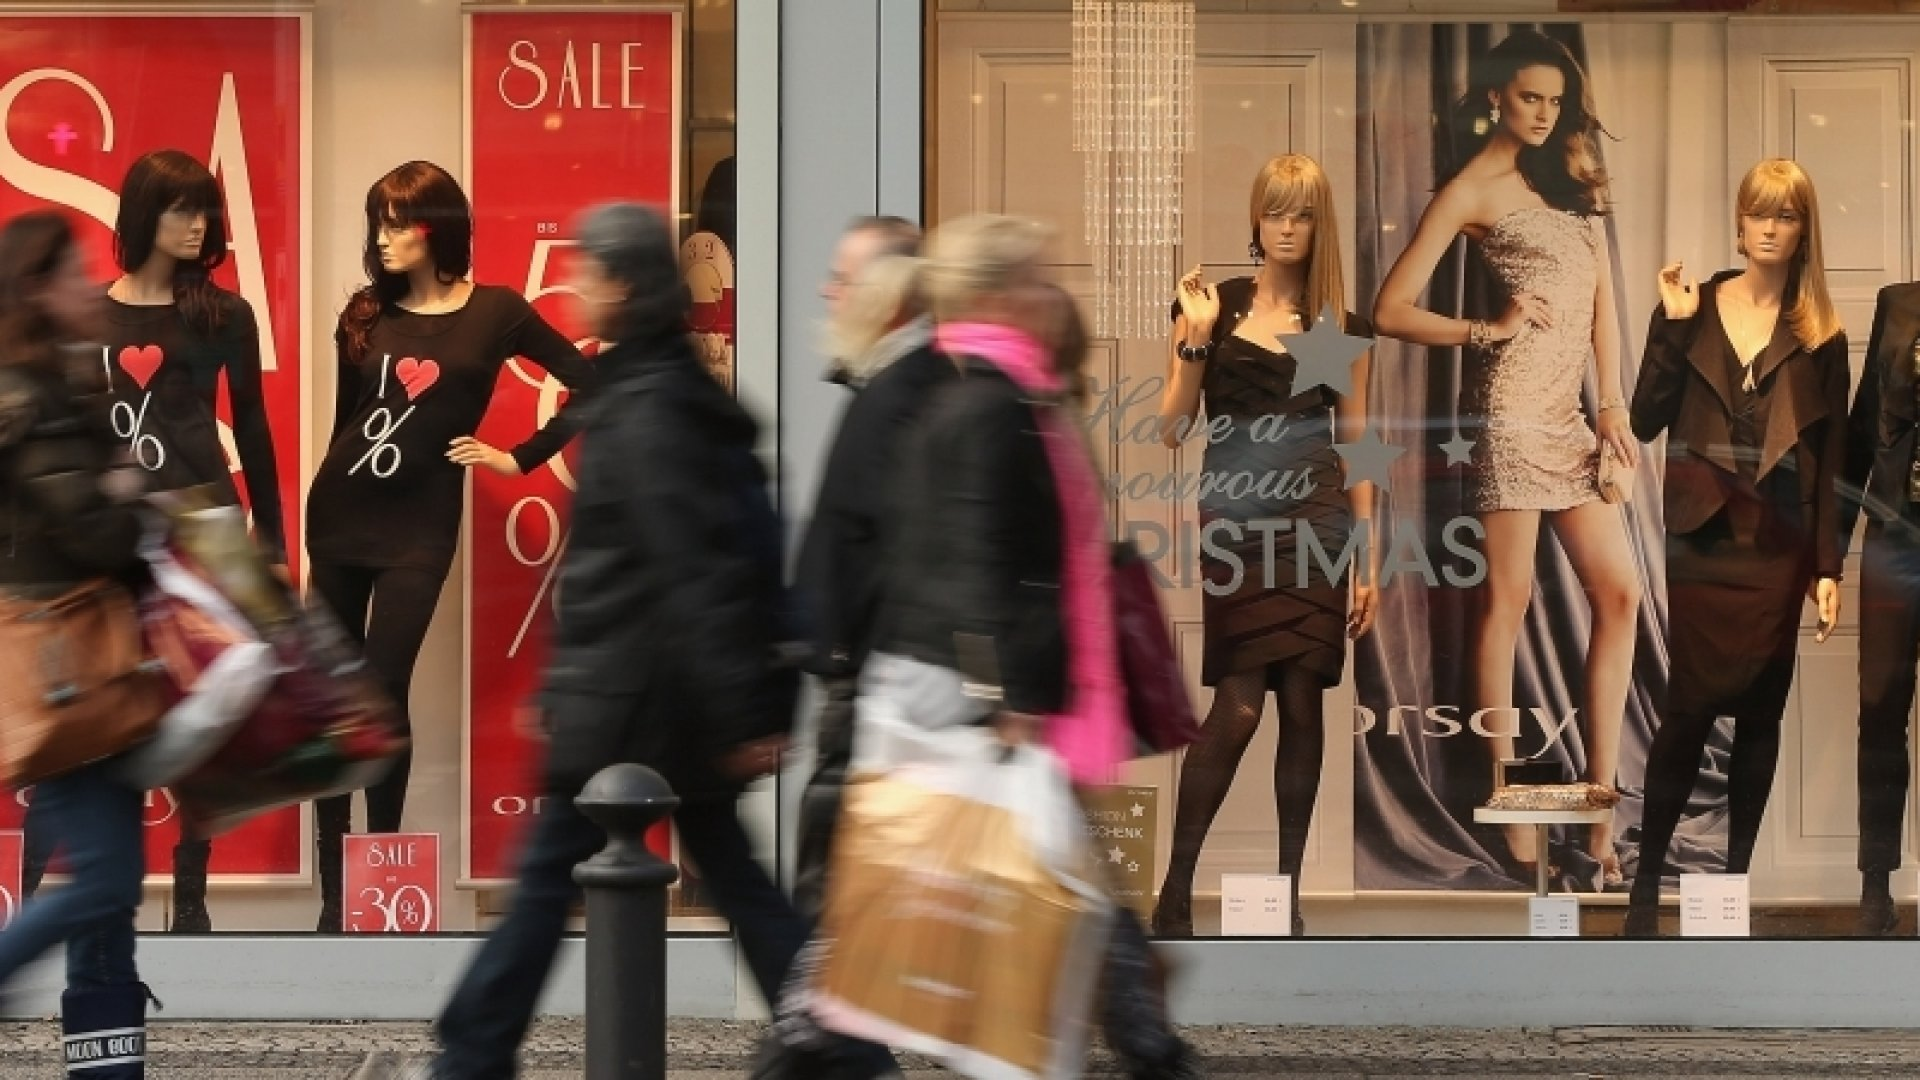 5 Tips For Retailers Looking To Rise Above The Competition This Holiday Season